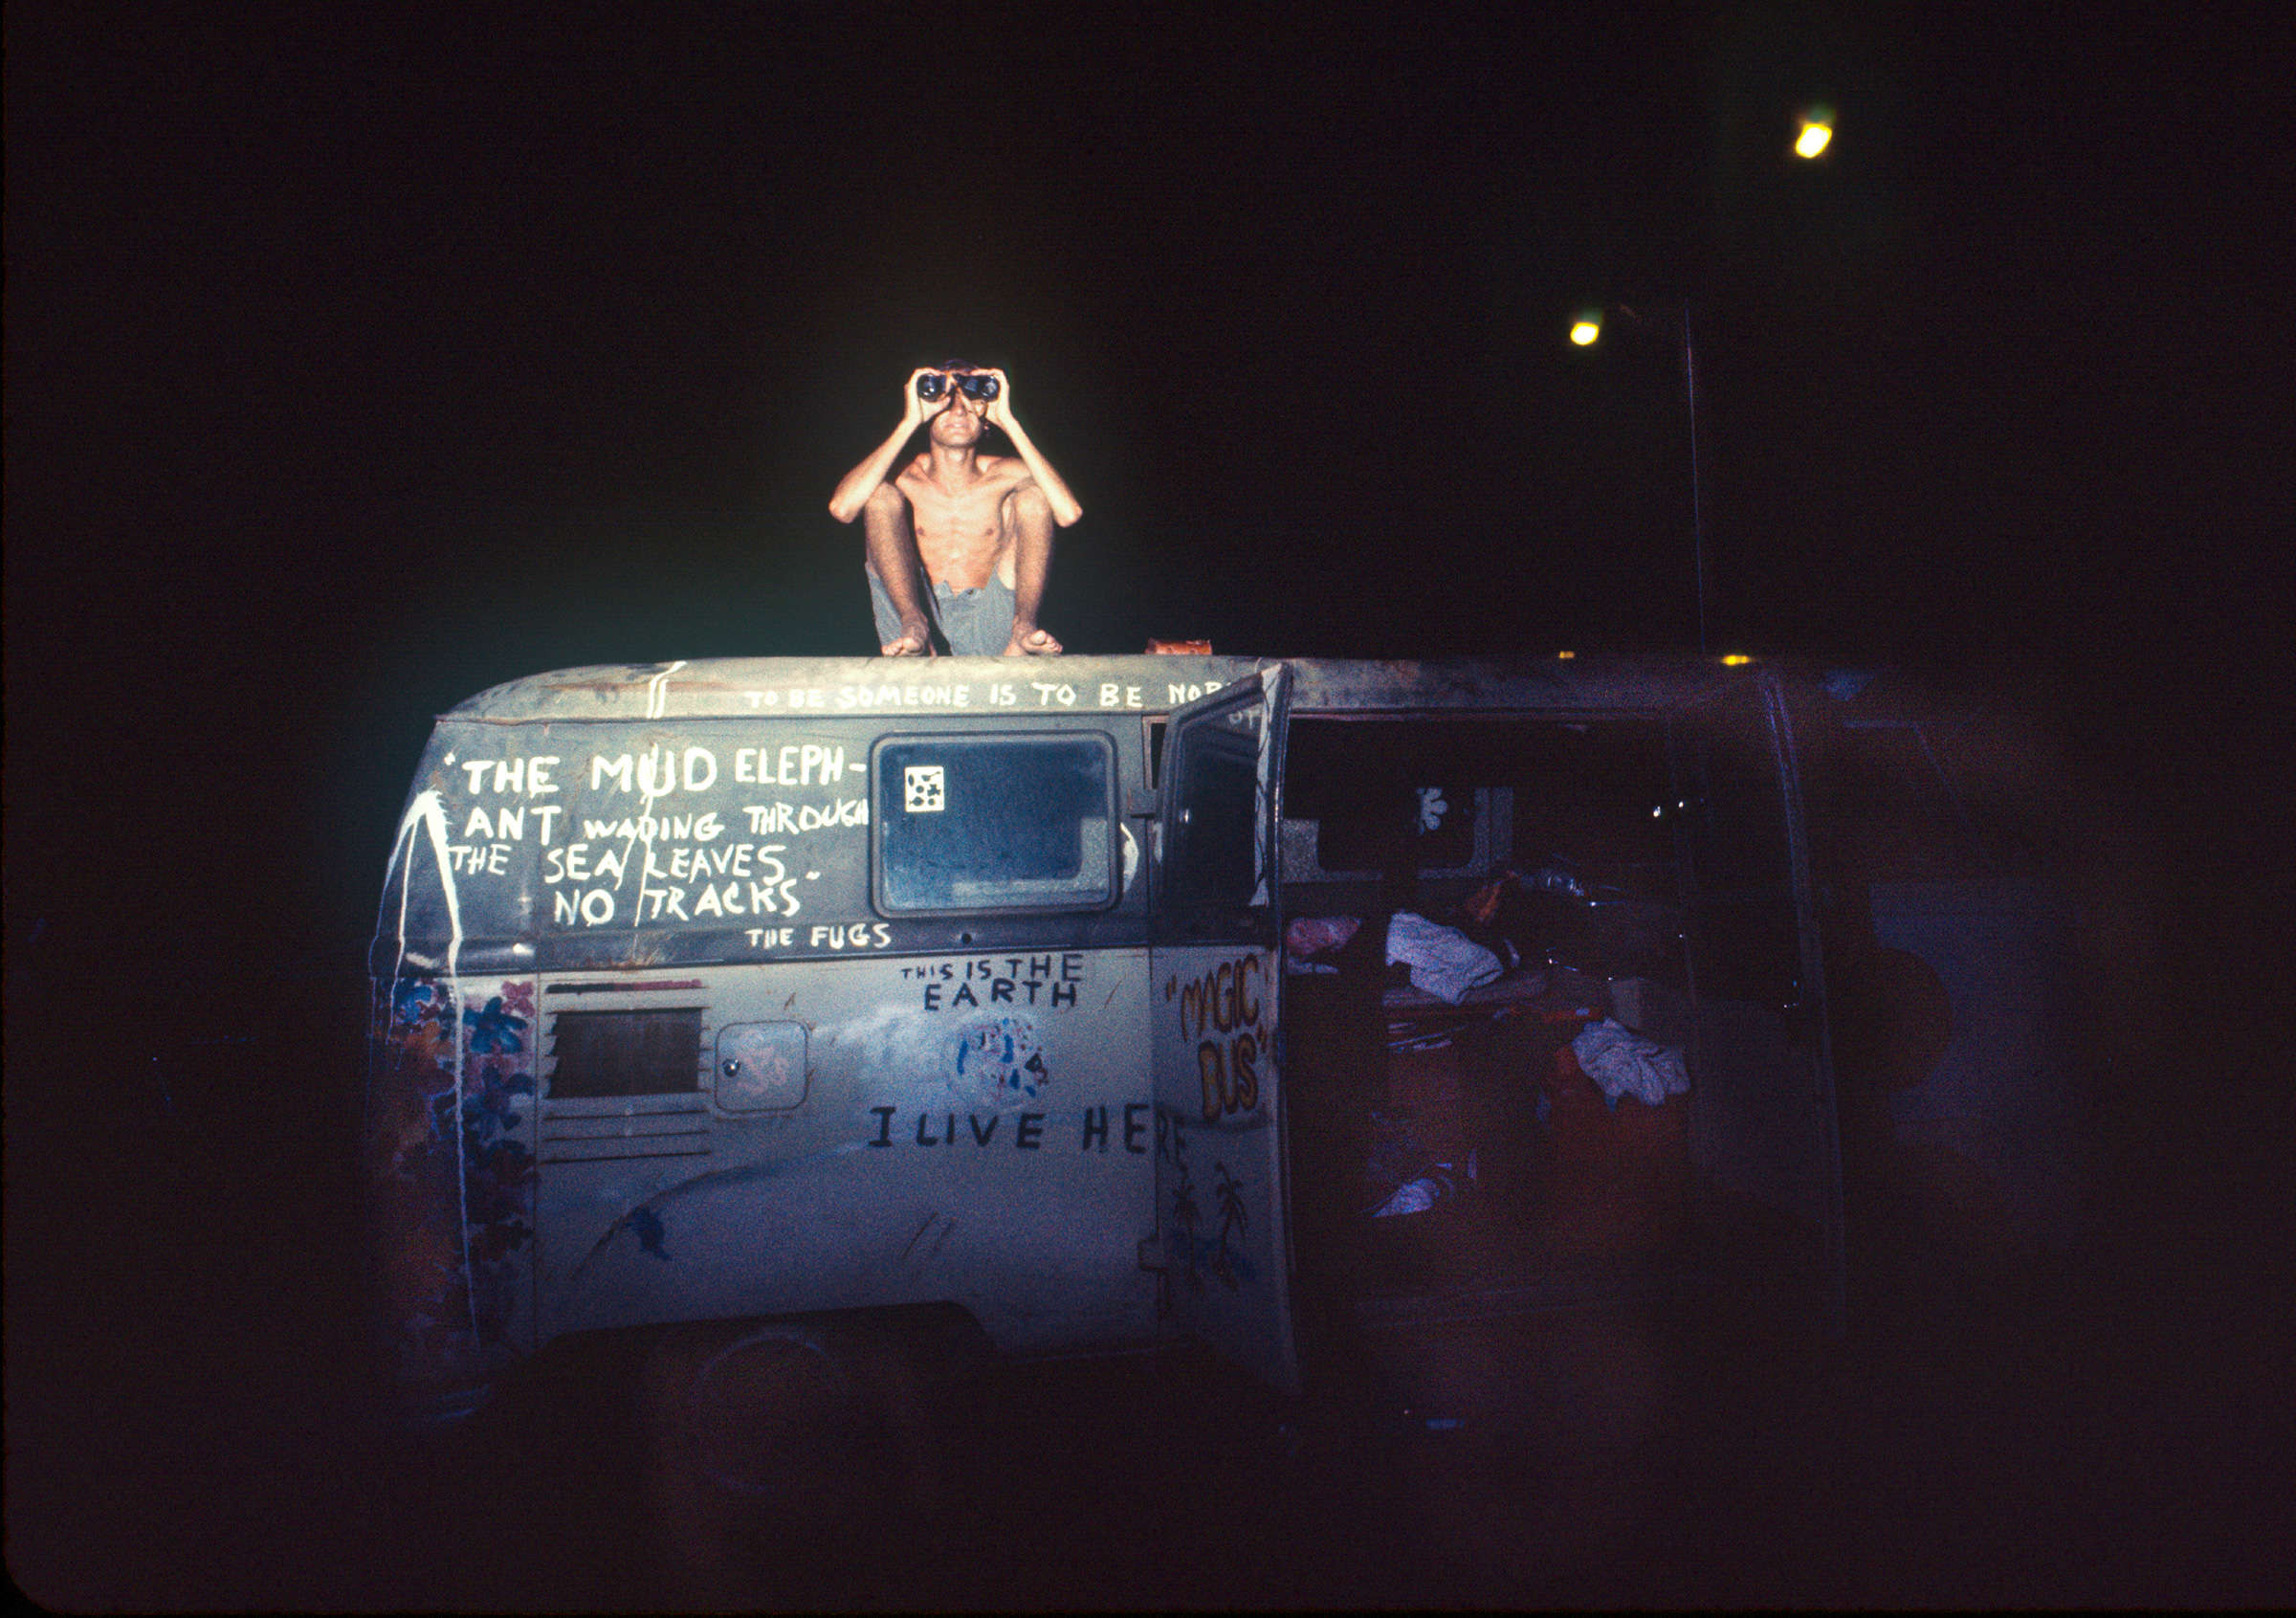 A camper tries to get a better view of the Apollo 11 launch site.